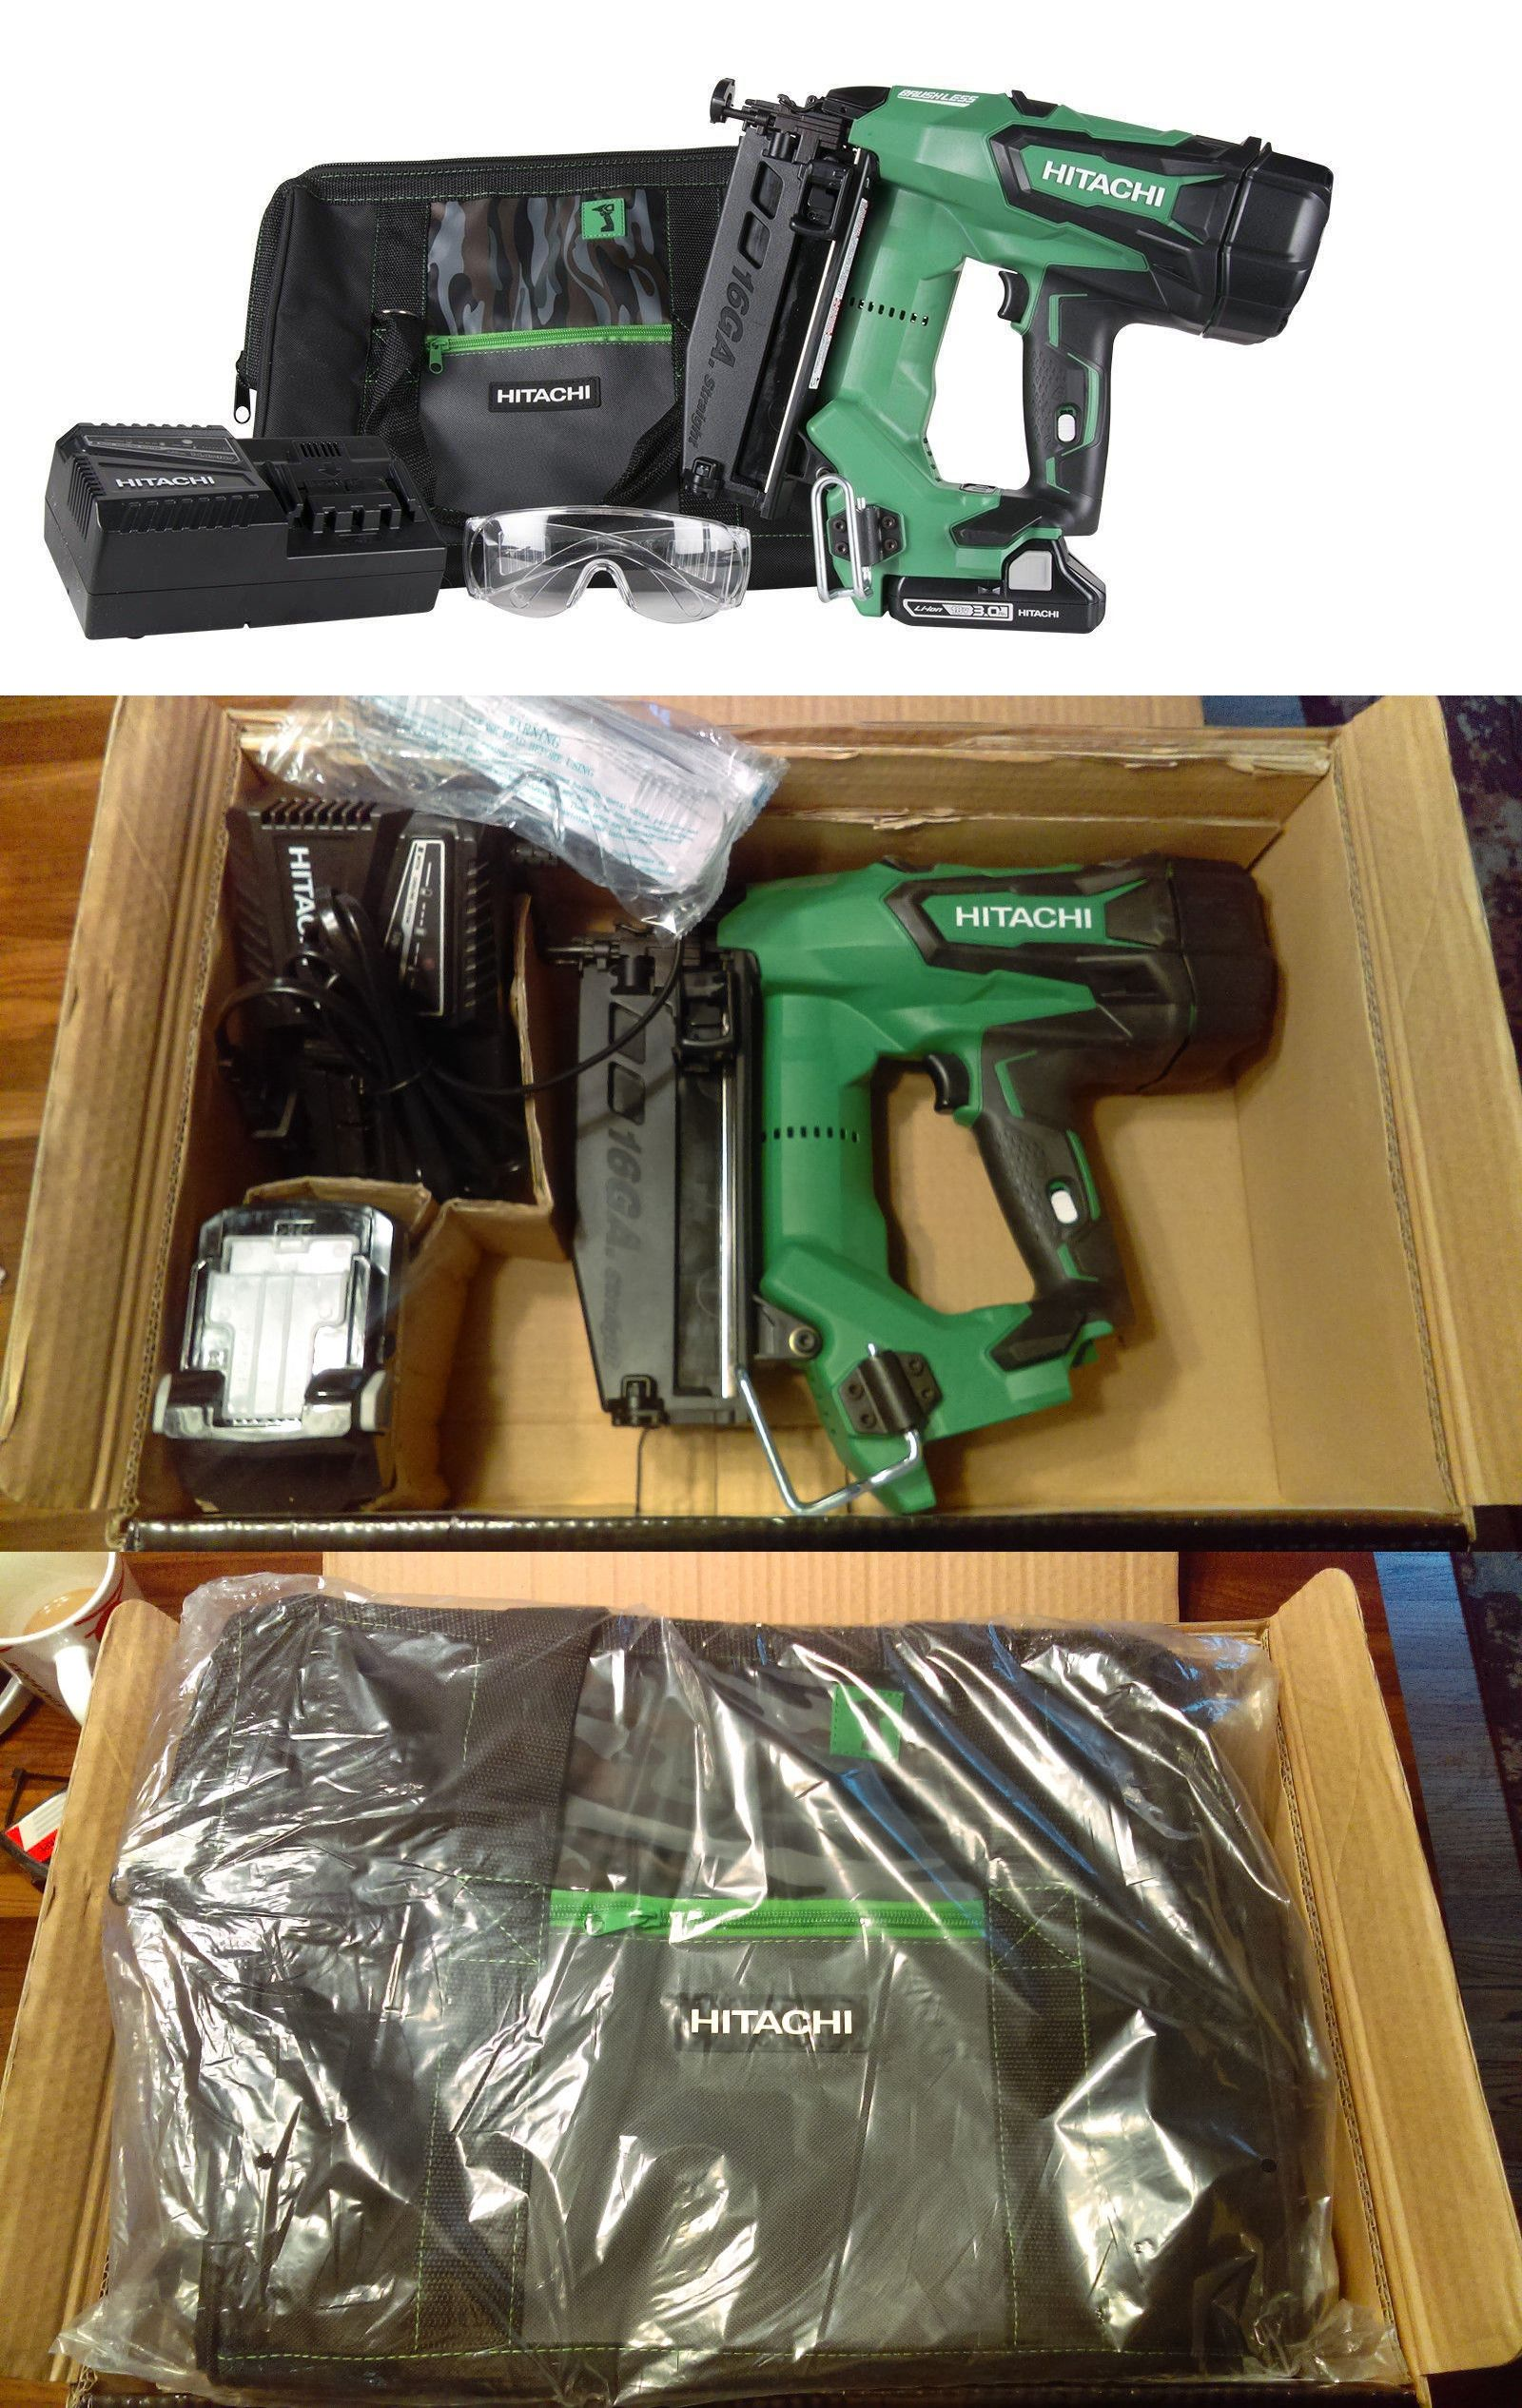 Nail And Staple Guns 122828 Cordless Finish Nailer Hitachi 16 Gauge 18v Batt Straight Finishing Trim Bonus Buy It Finishing Trim Finish Nailer Staple Guns